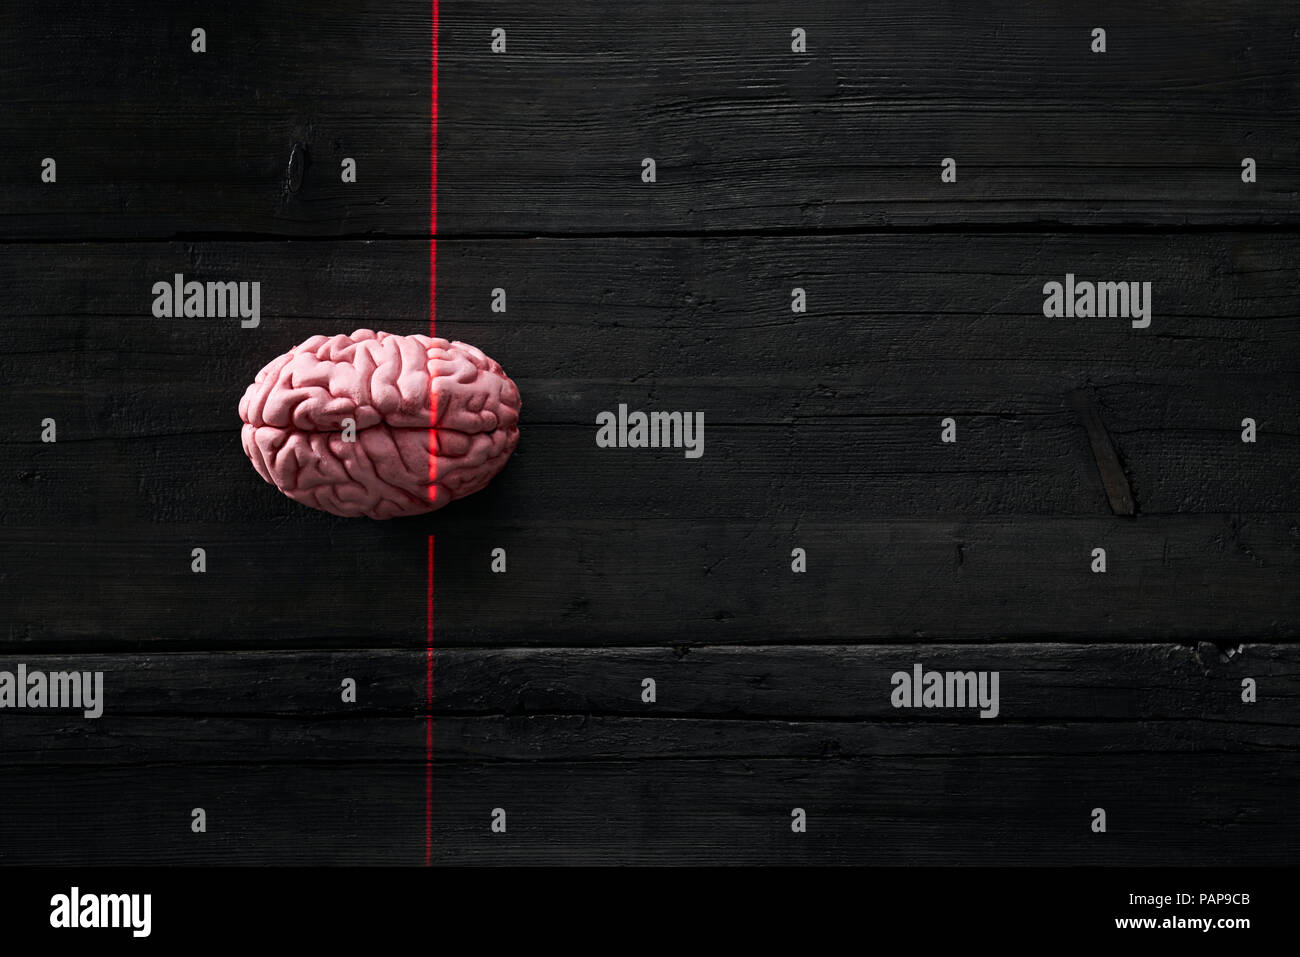 Artificial intelligence, brain getting measured by light ray - Stock Image